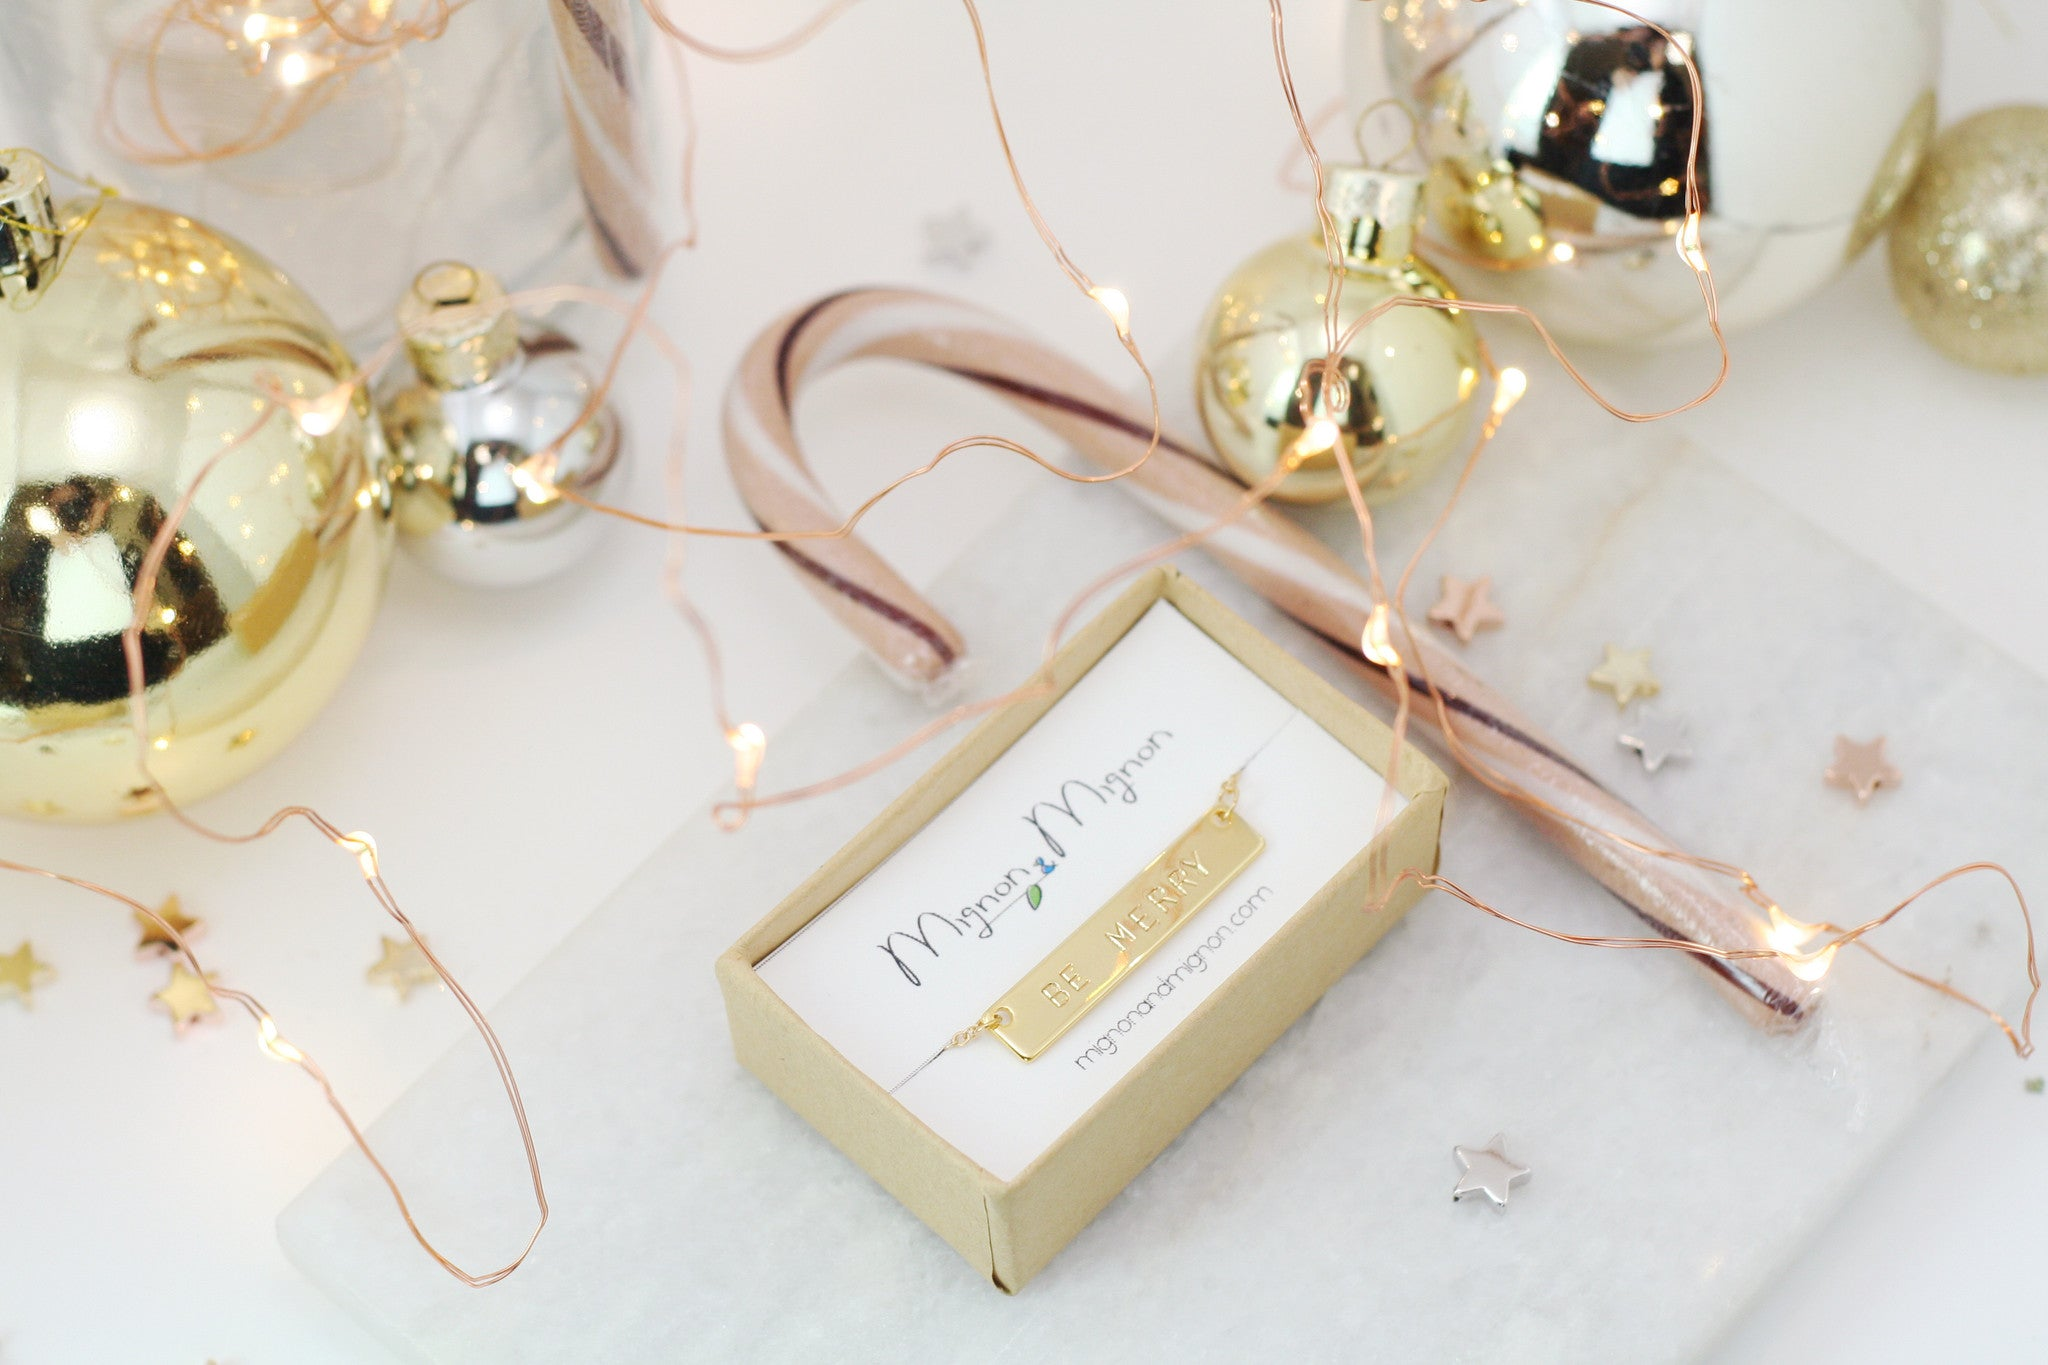 Gift Ideas - Perfect Christmas Gift For Her